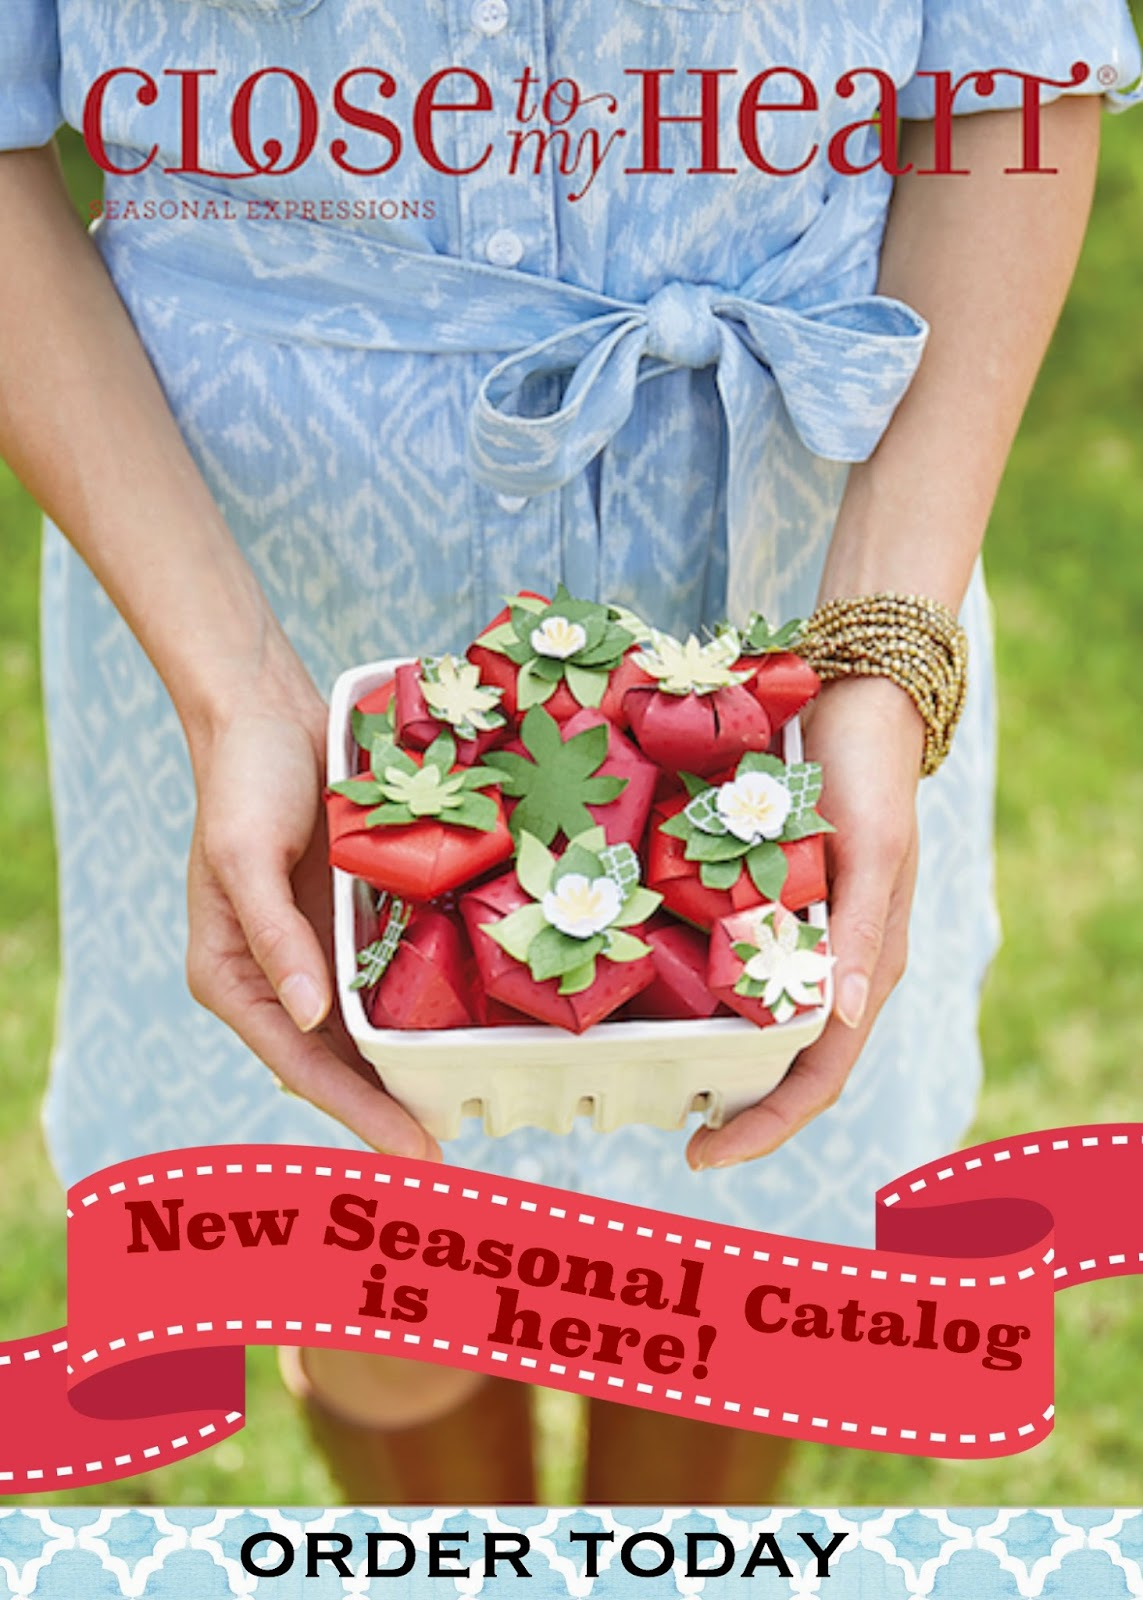 Seasonal catalog